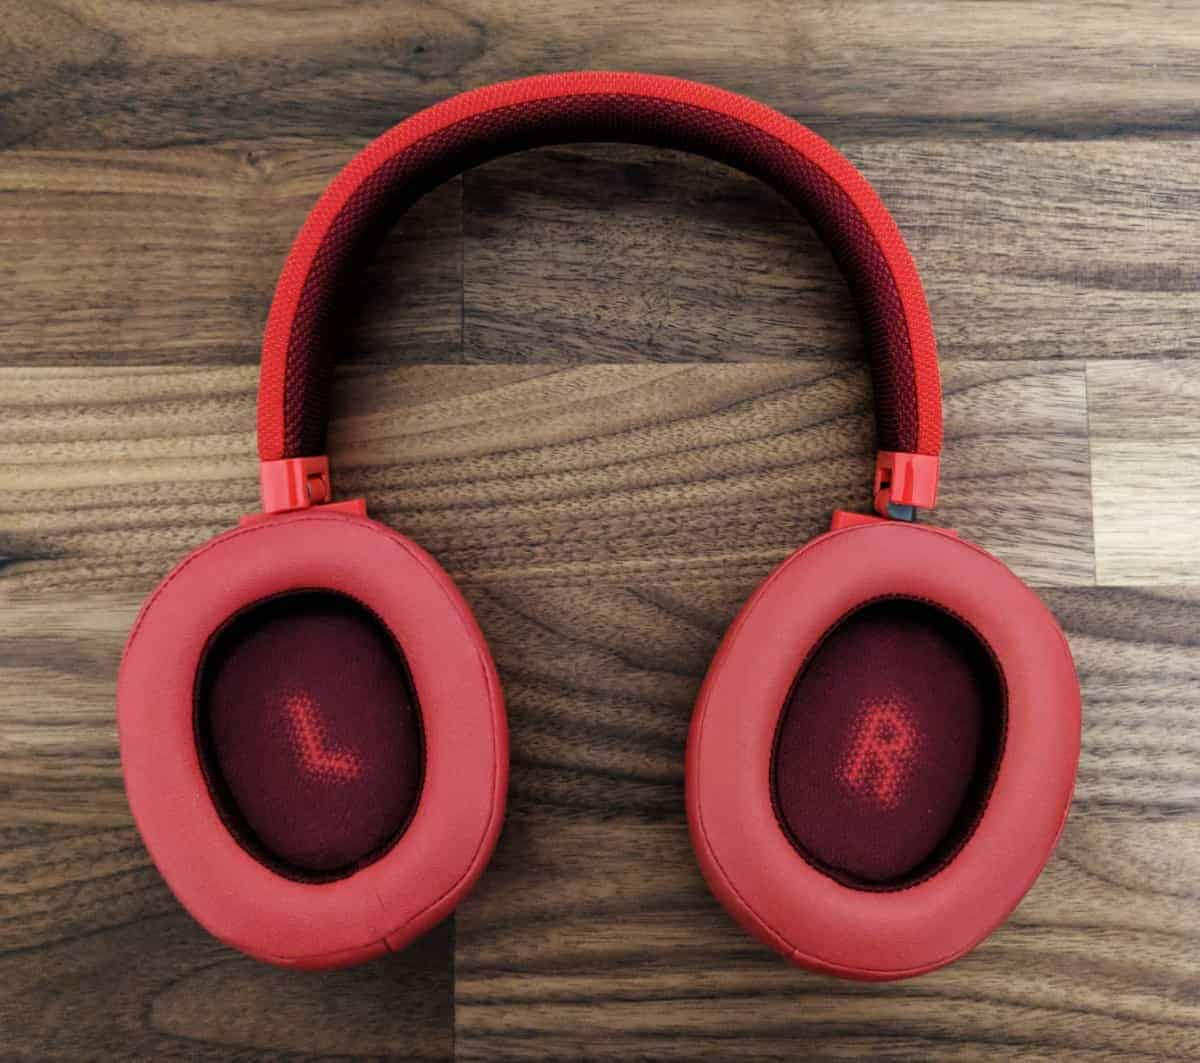 JBL-E55BTi-Photos-19 JBL E55BT Wireless Headphones Review